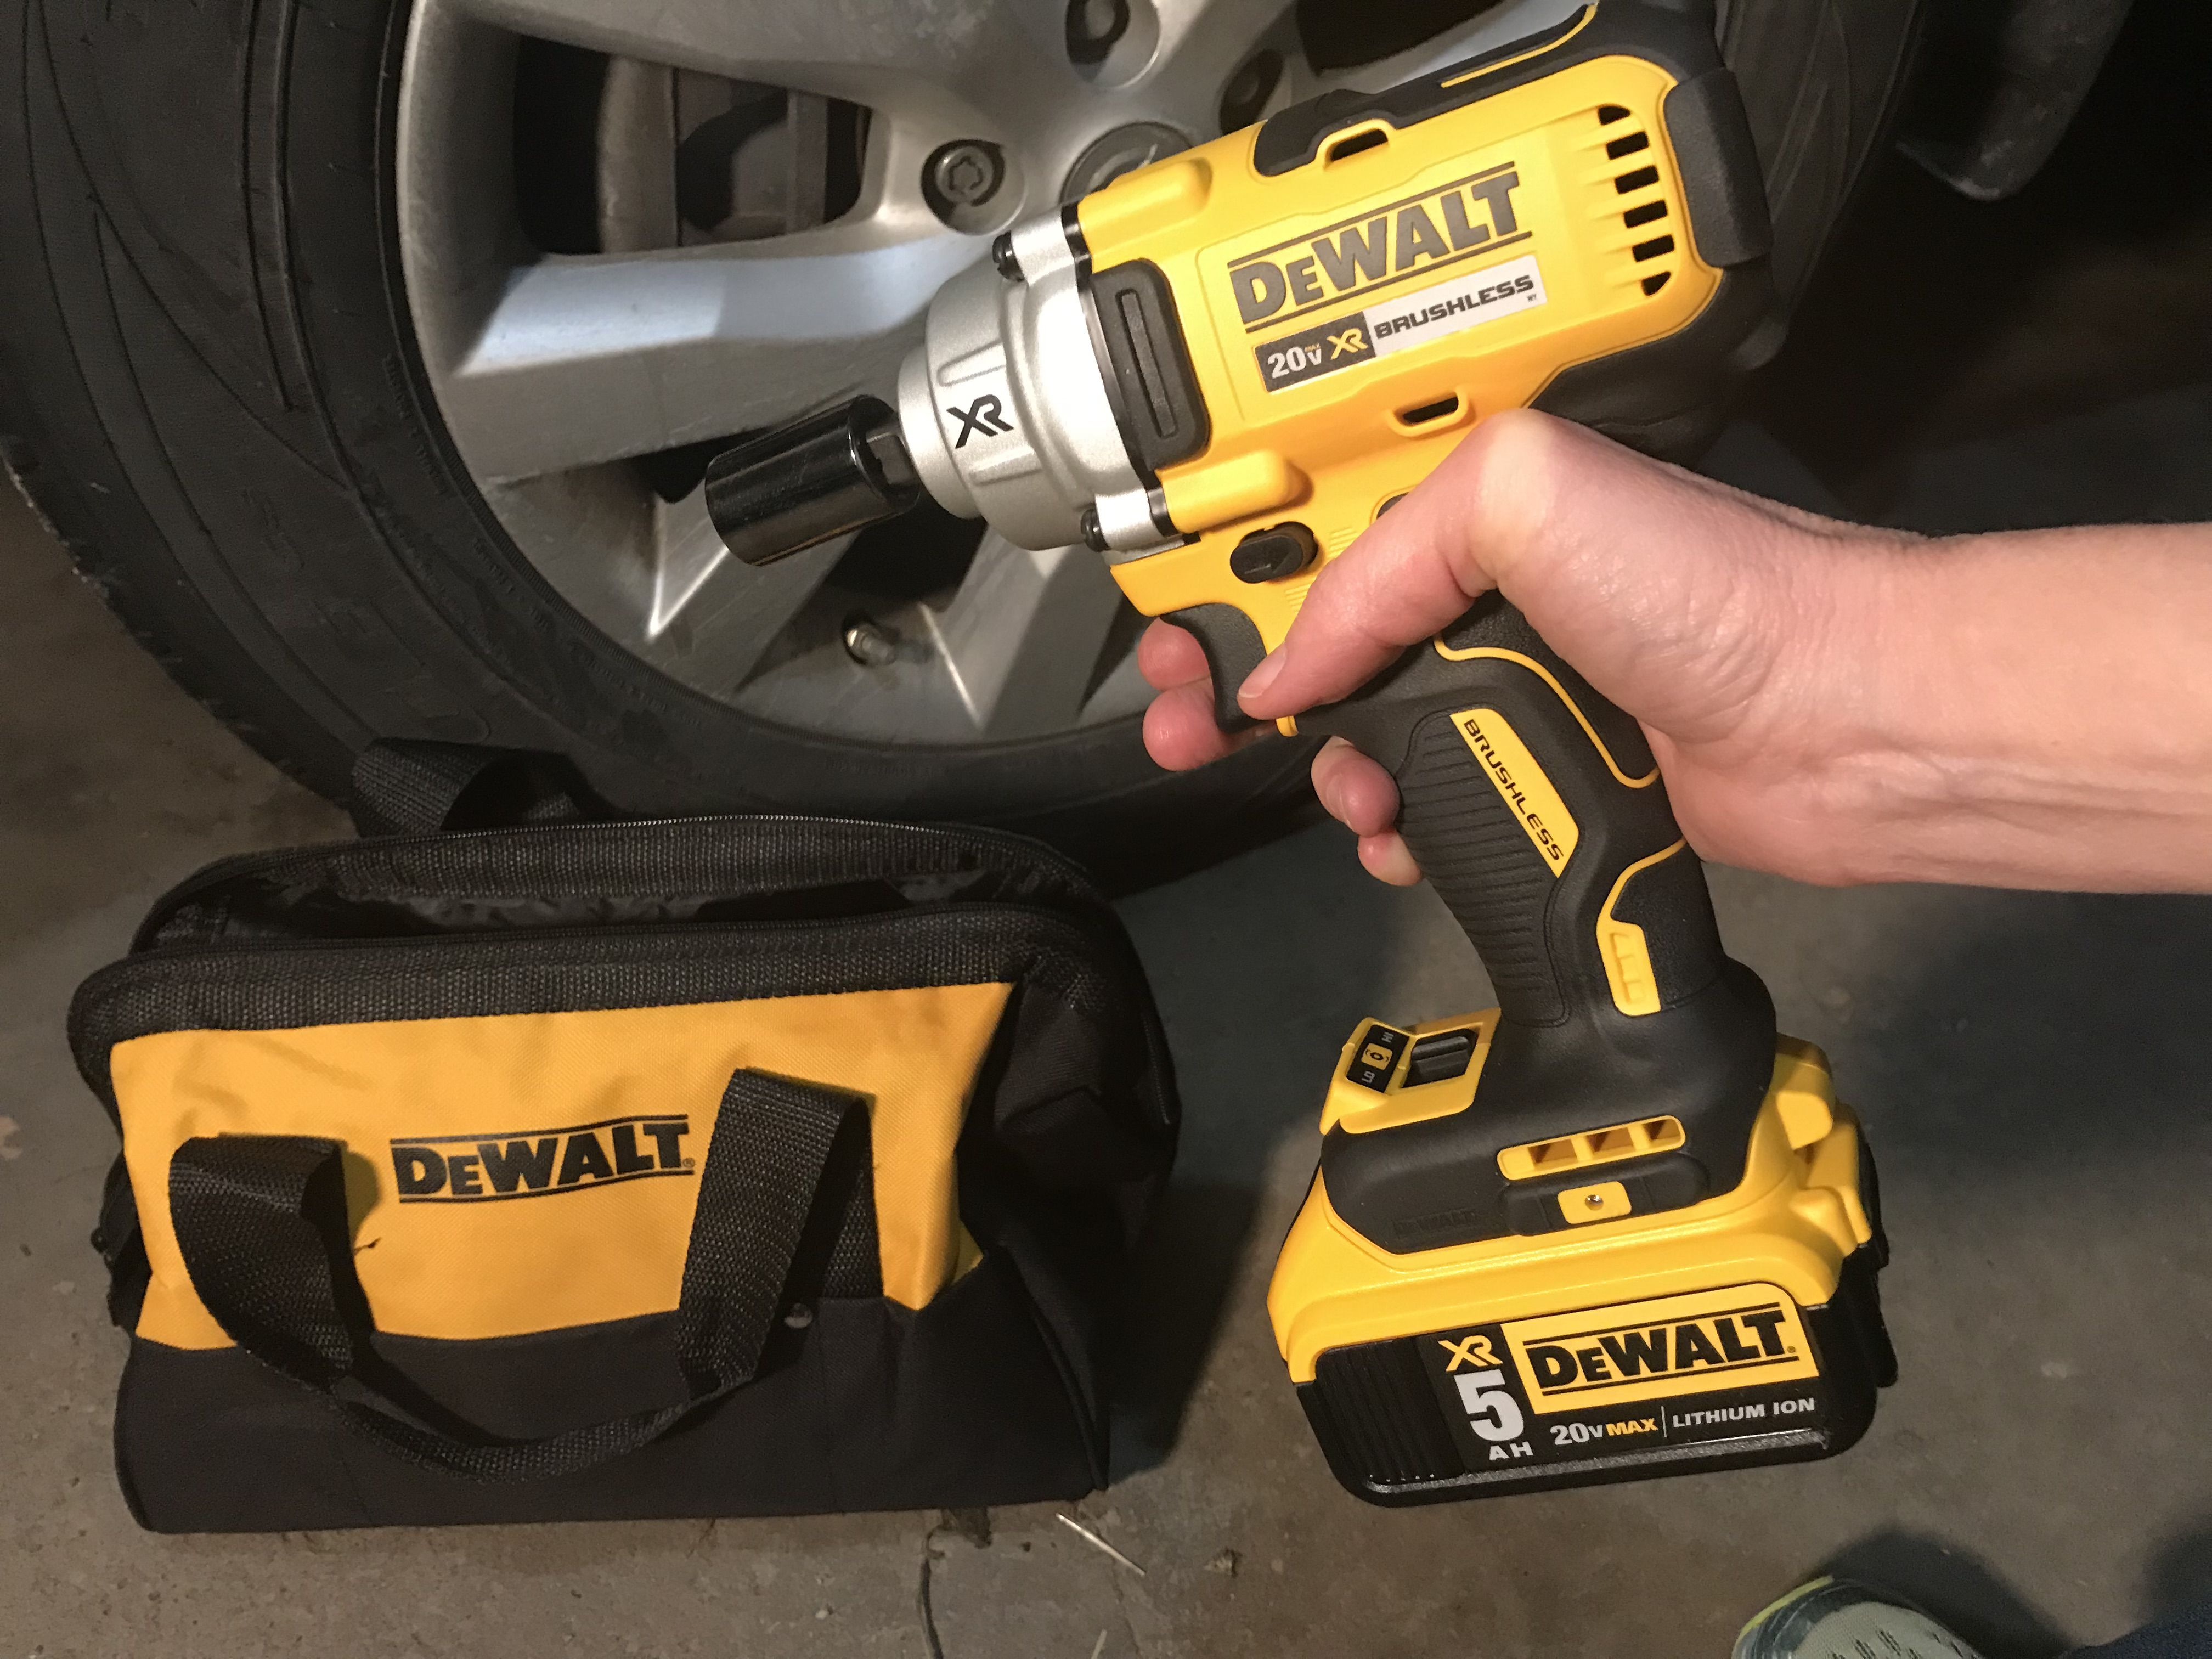 This DeWalt impact wrench can make your pit-crew dreams a reality